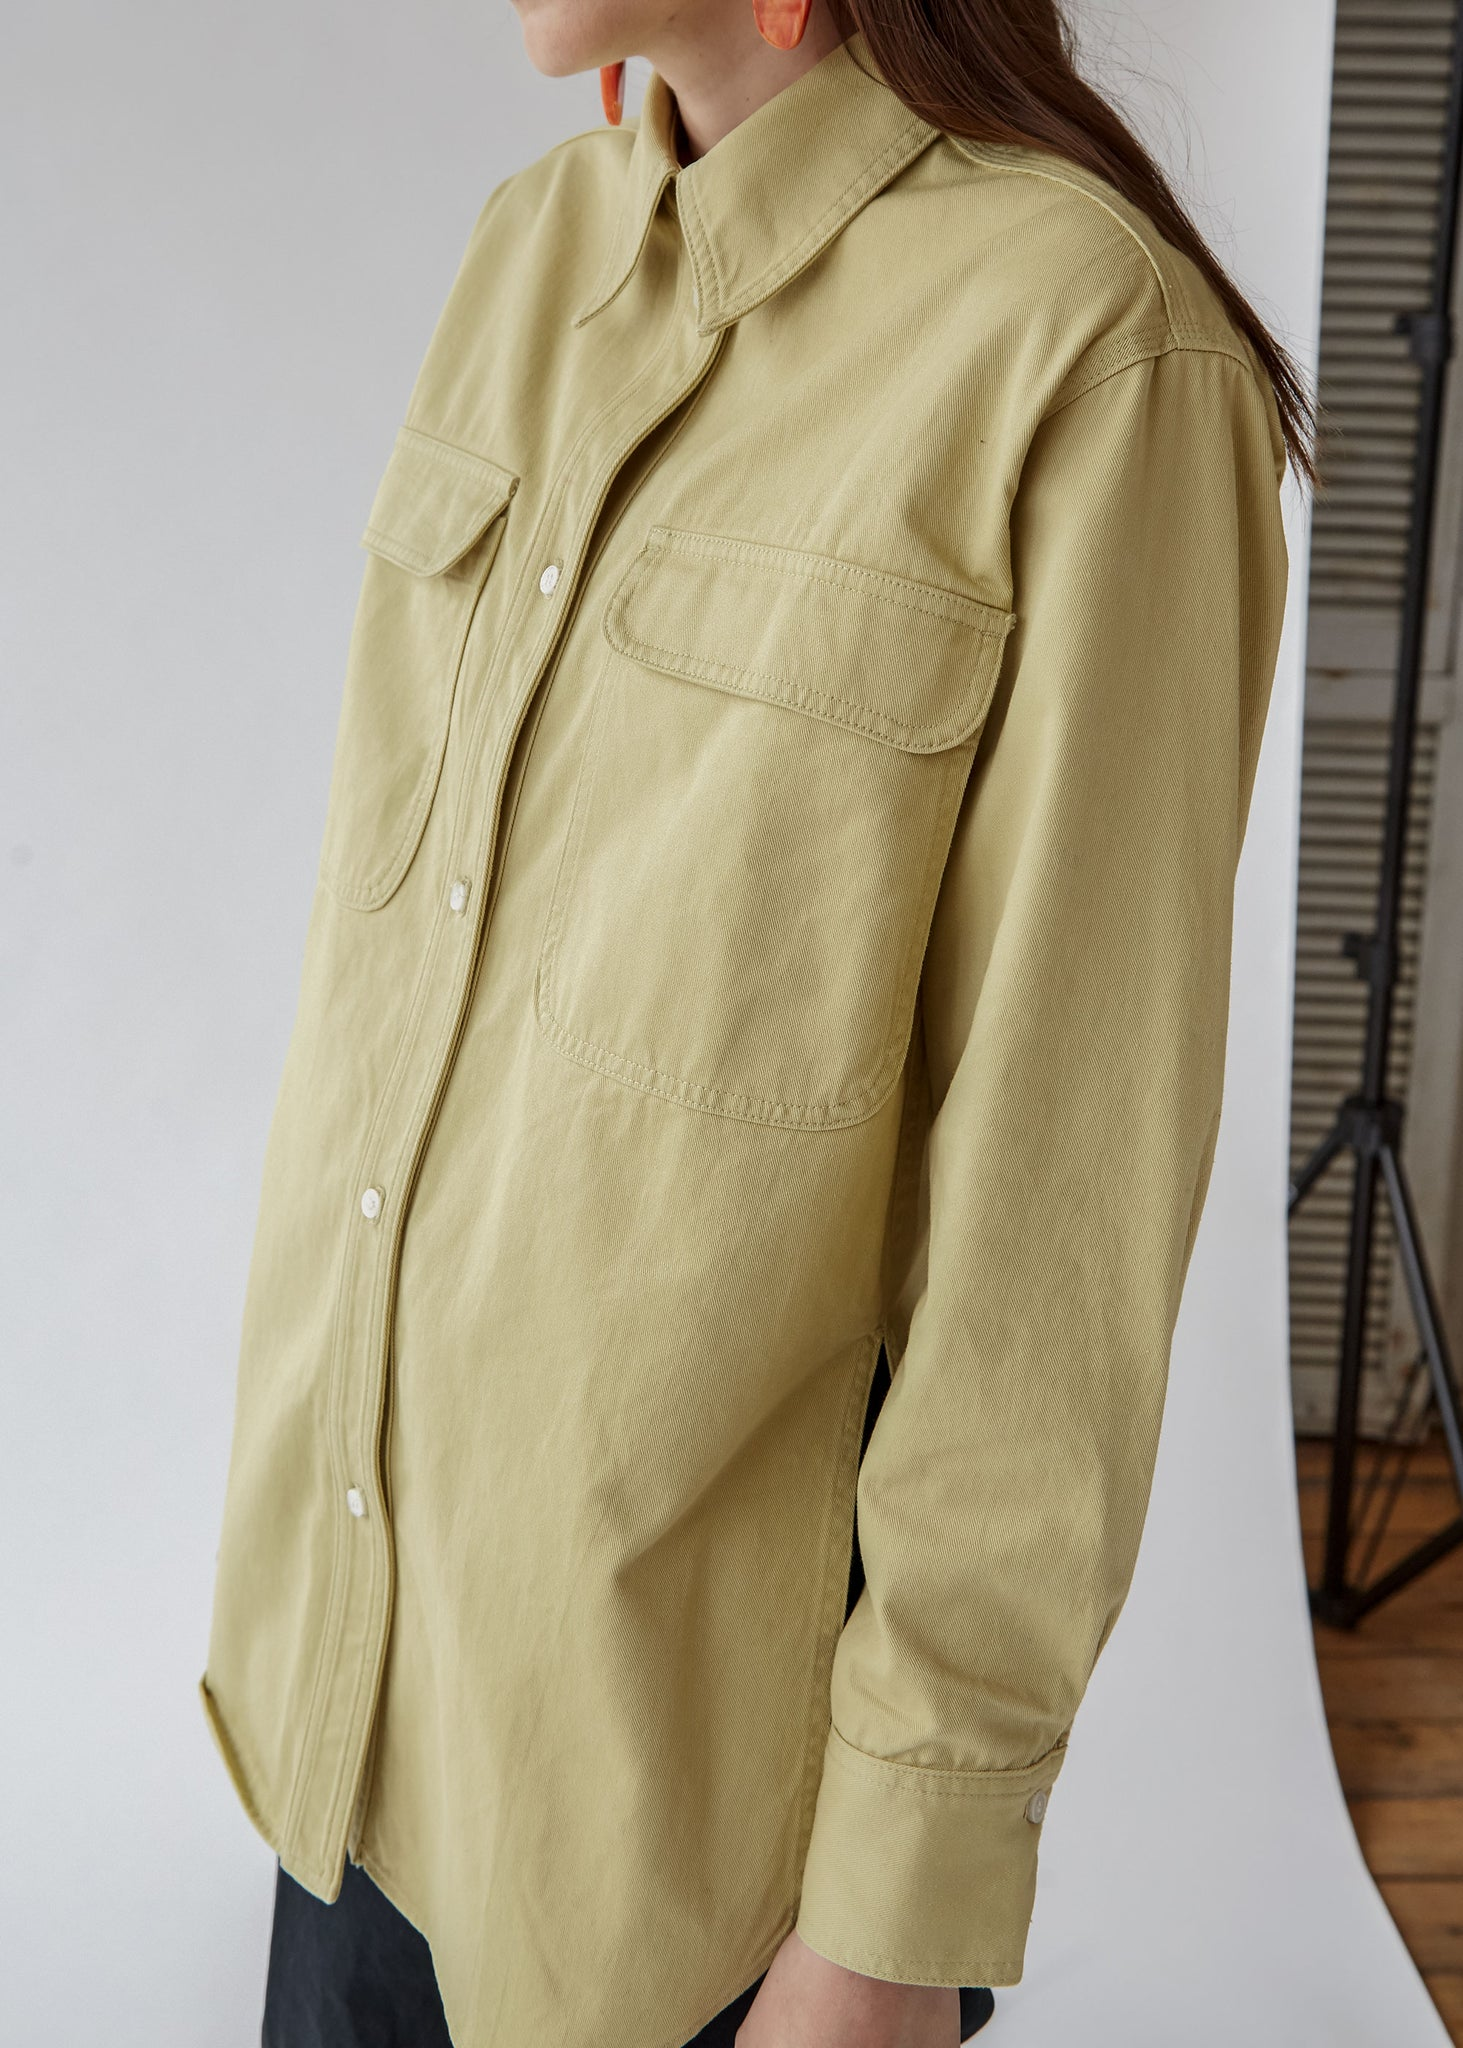 Supply Shirt in Khaki - SOLD OUT